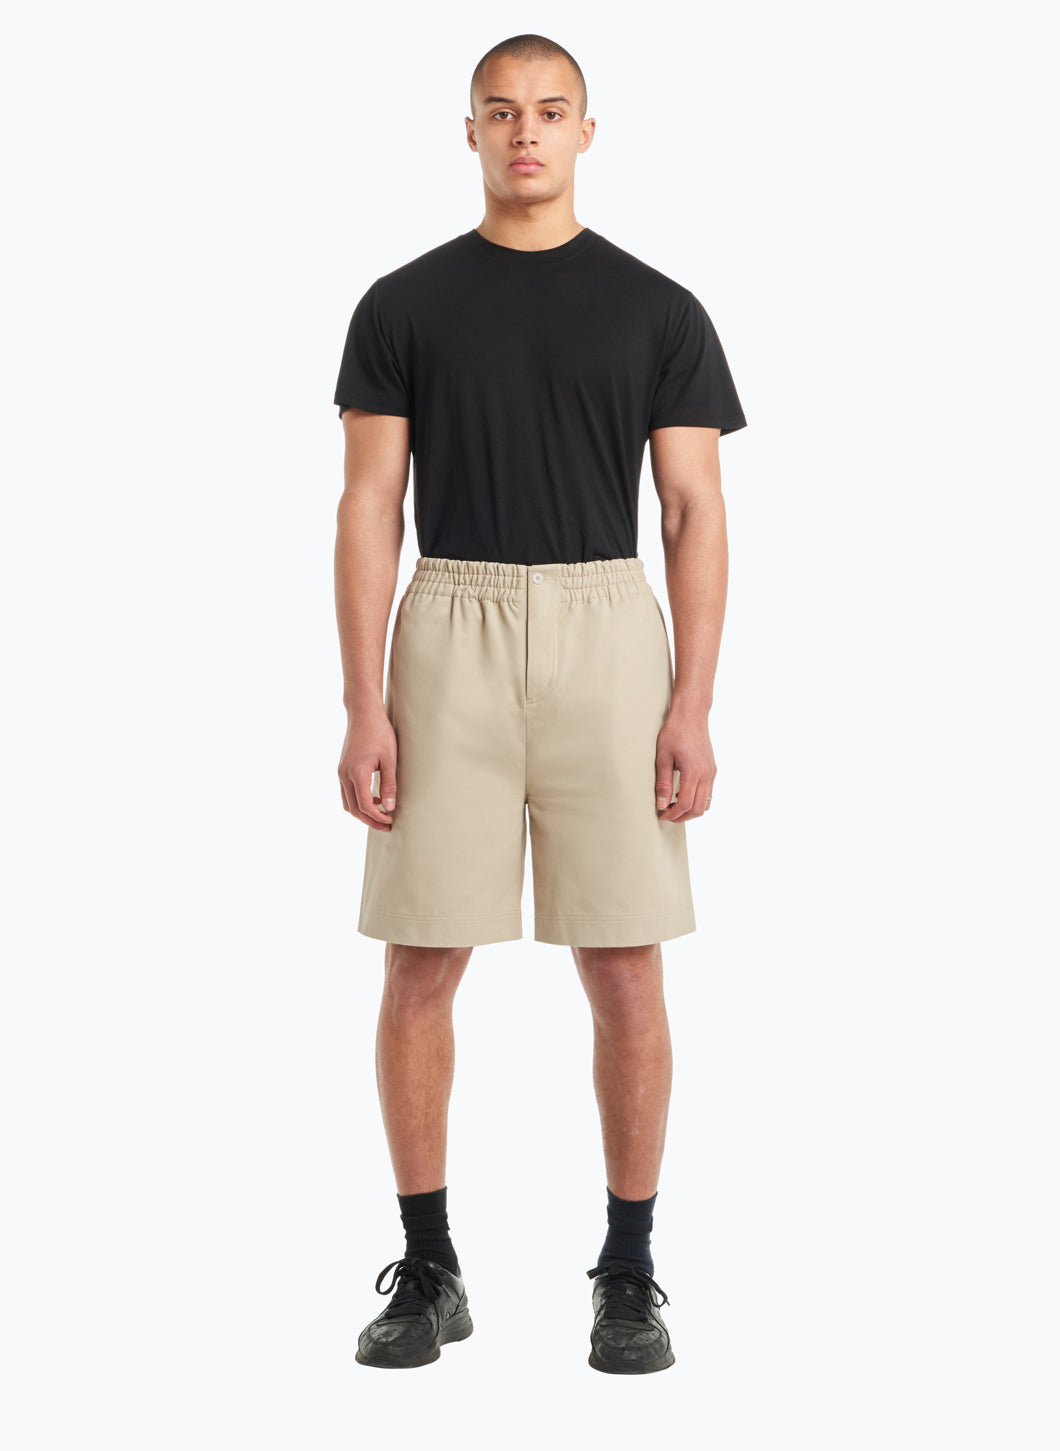 Bermuda Shorts with Stitched Waist in Beige Gabardine